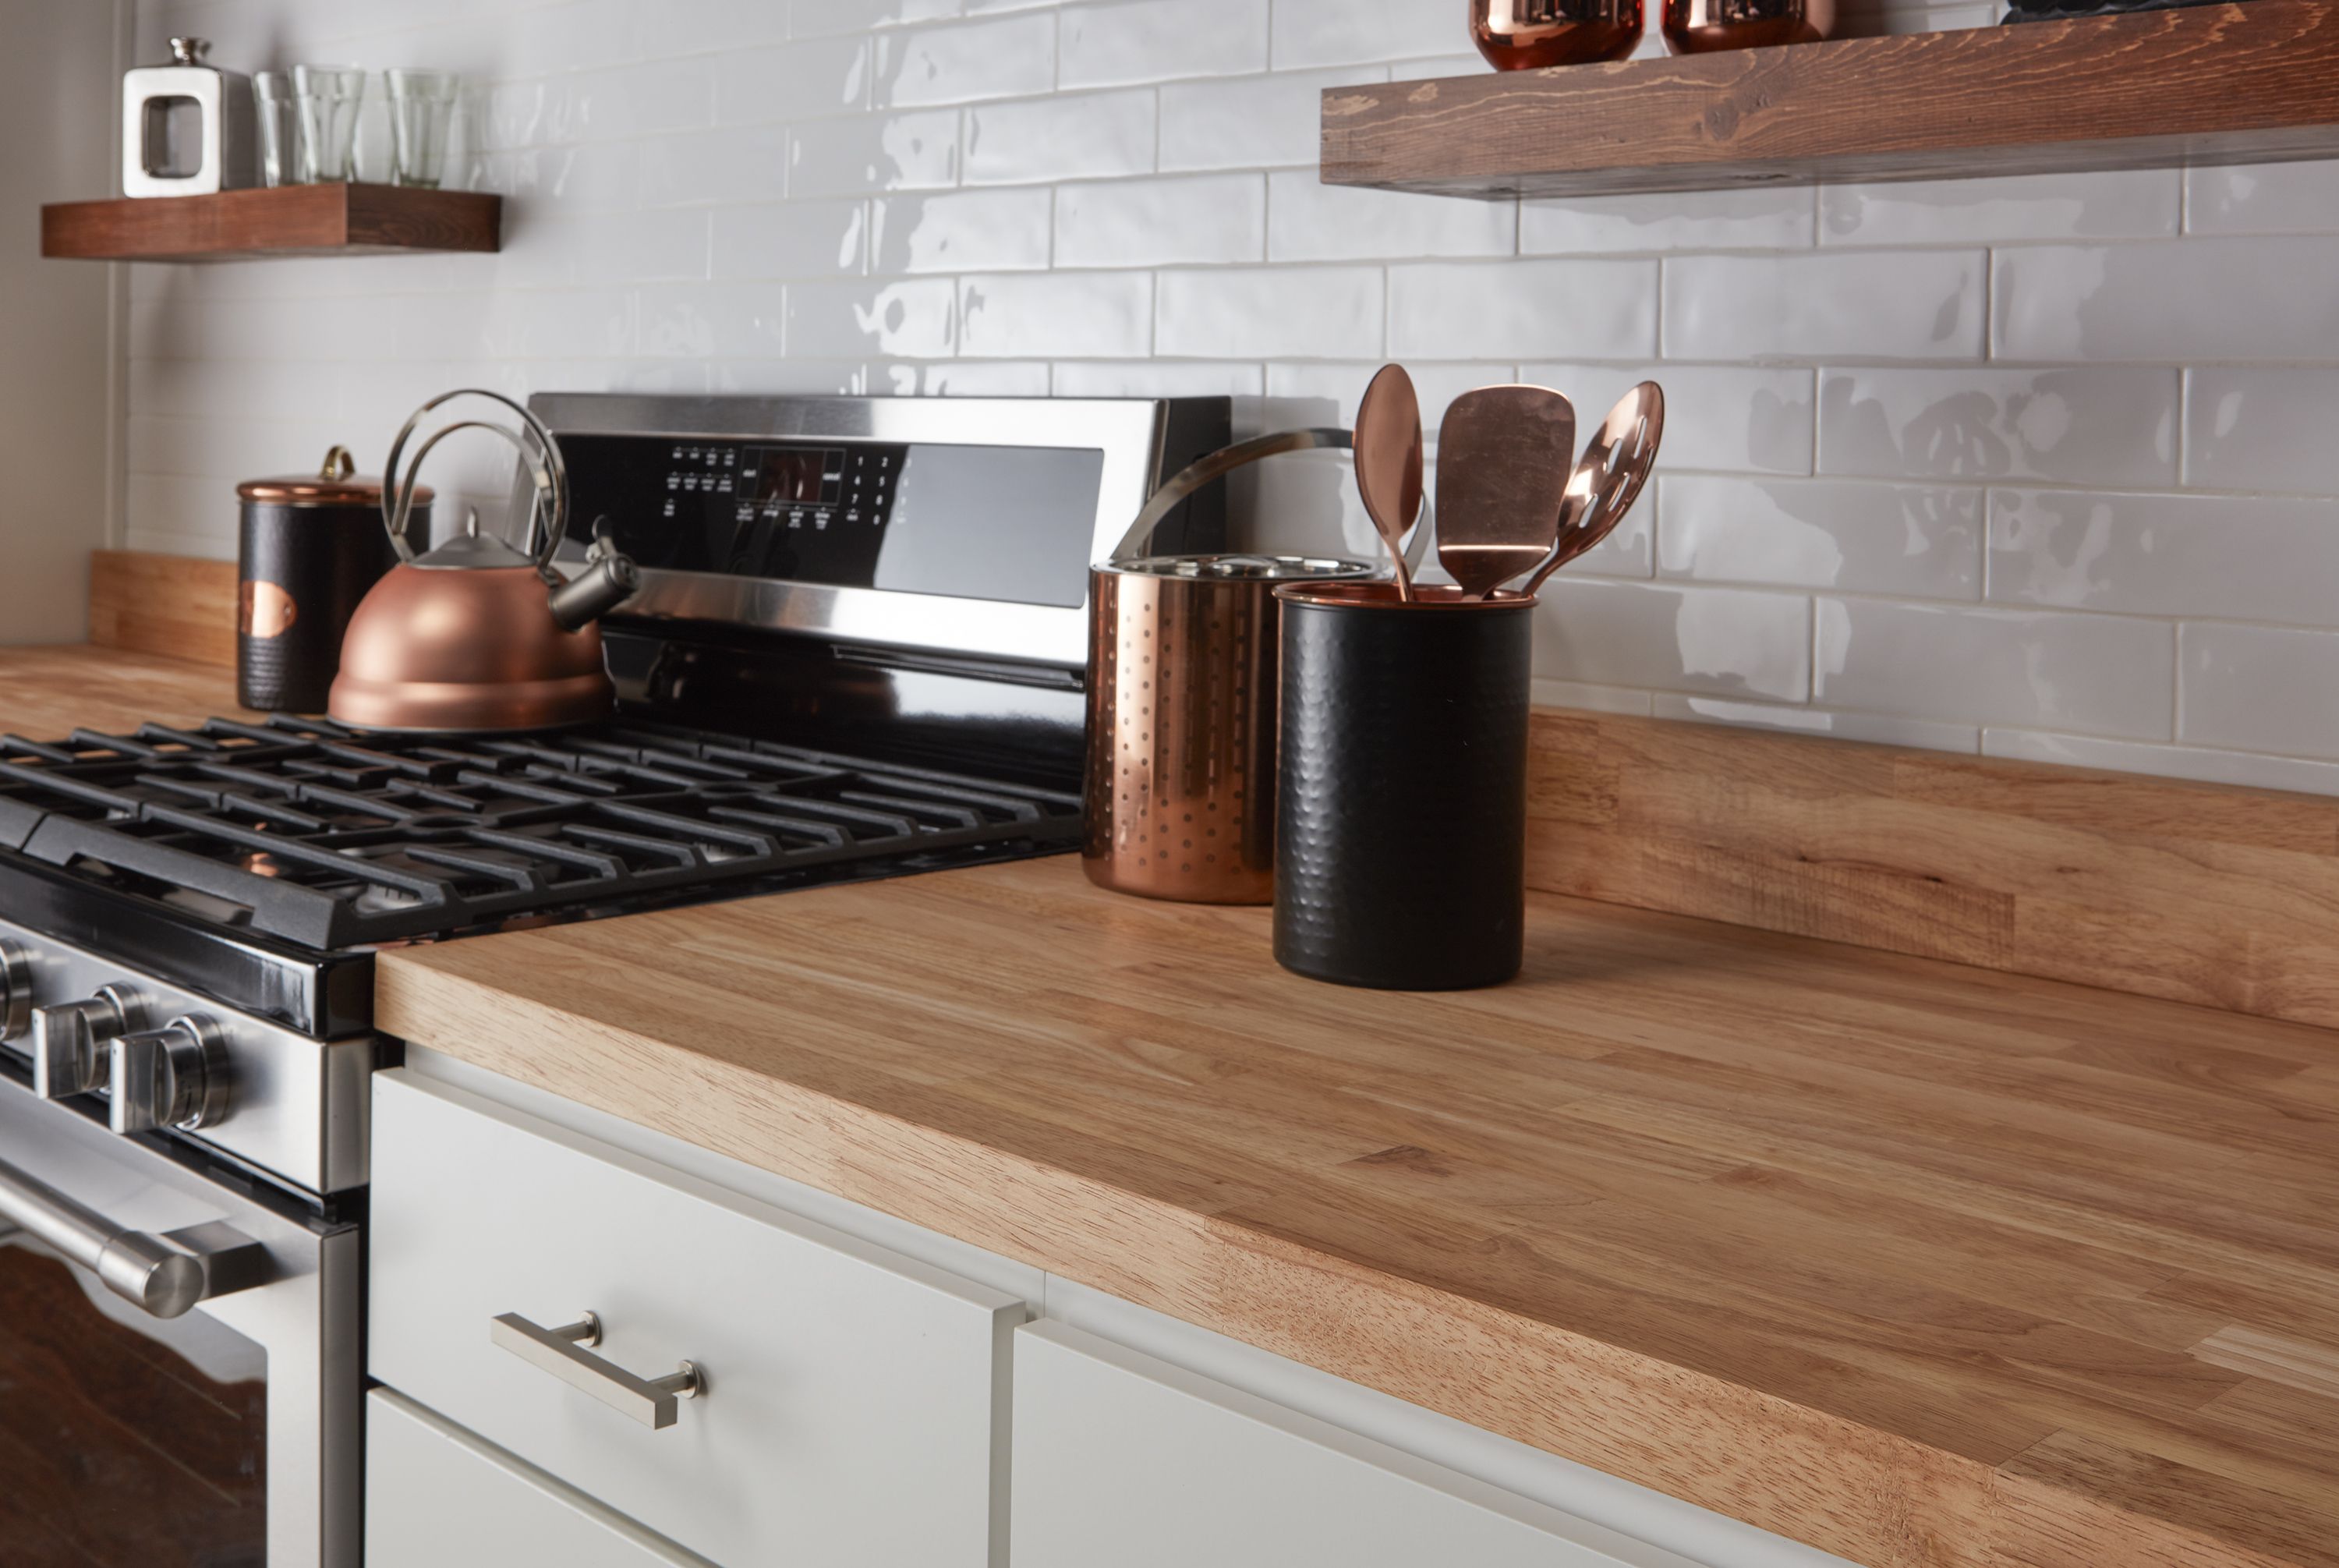 Personalize Your Countertops To Match Any Design Aesthetic With